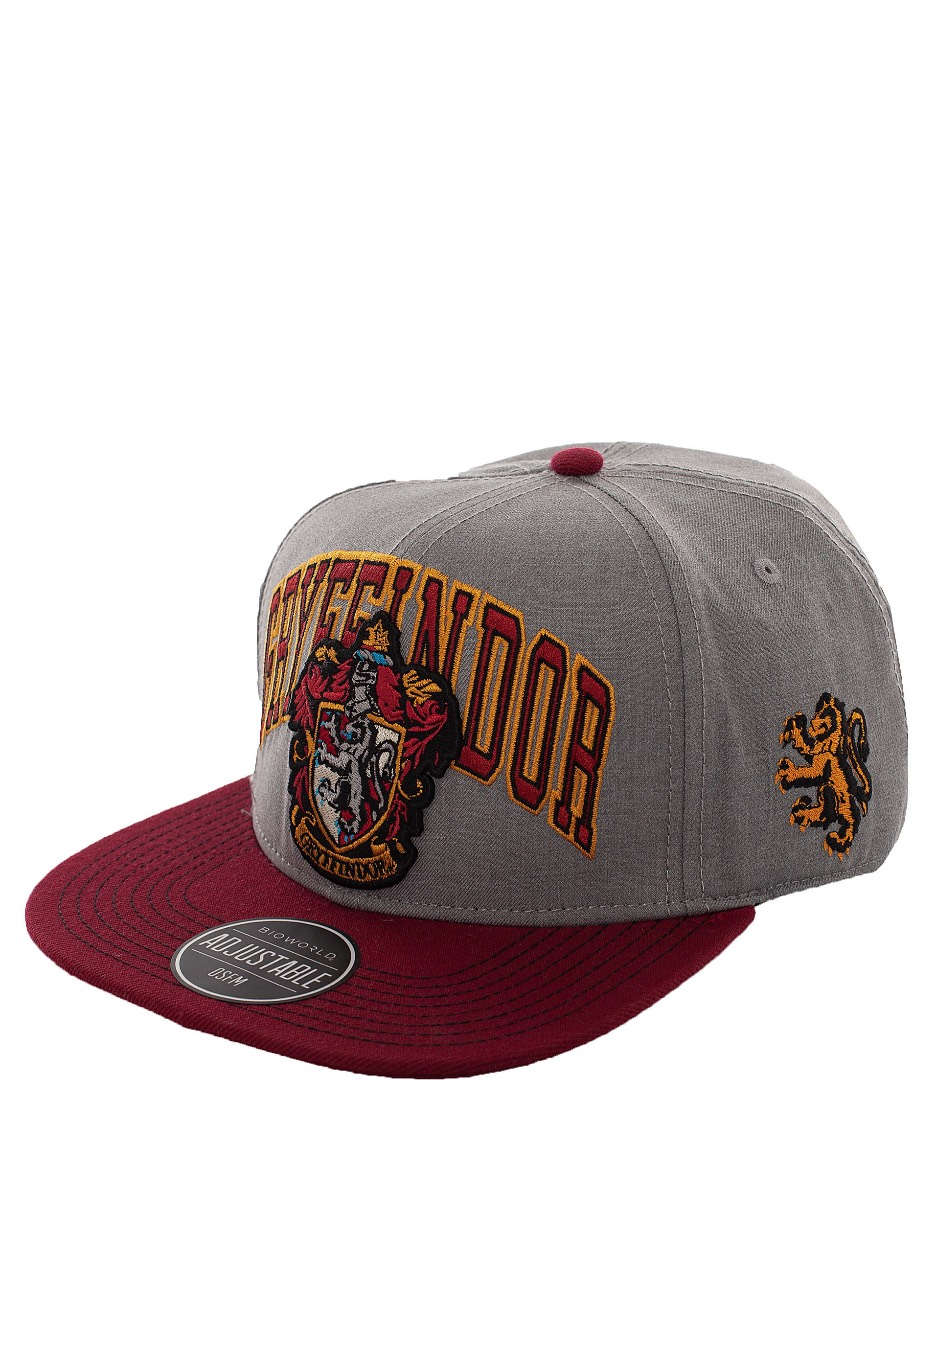 Harry Potter - Gryffindor Grey - Cap - Impericon.com Worldwide 28ace338a7c8